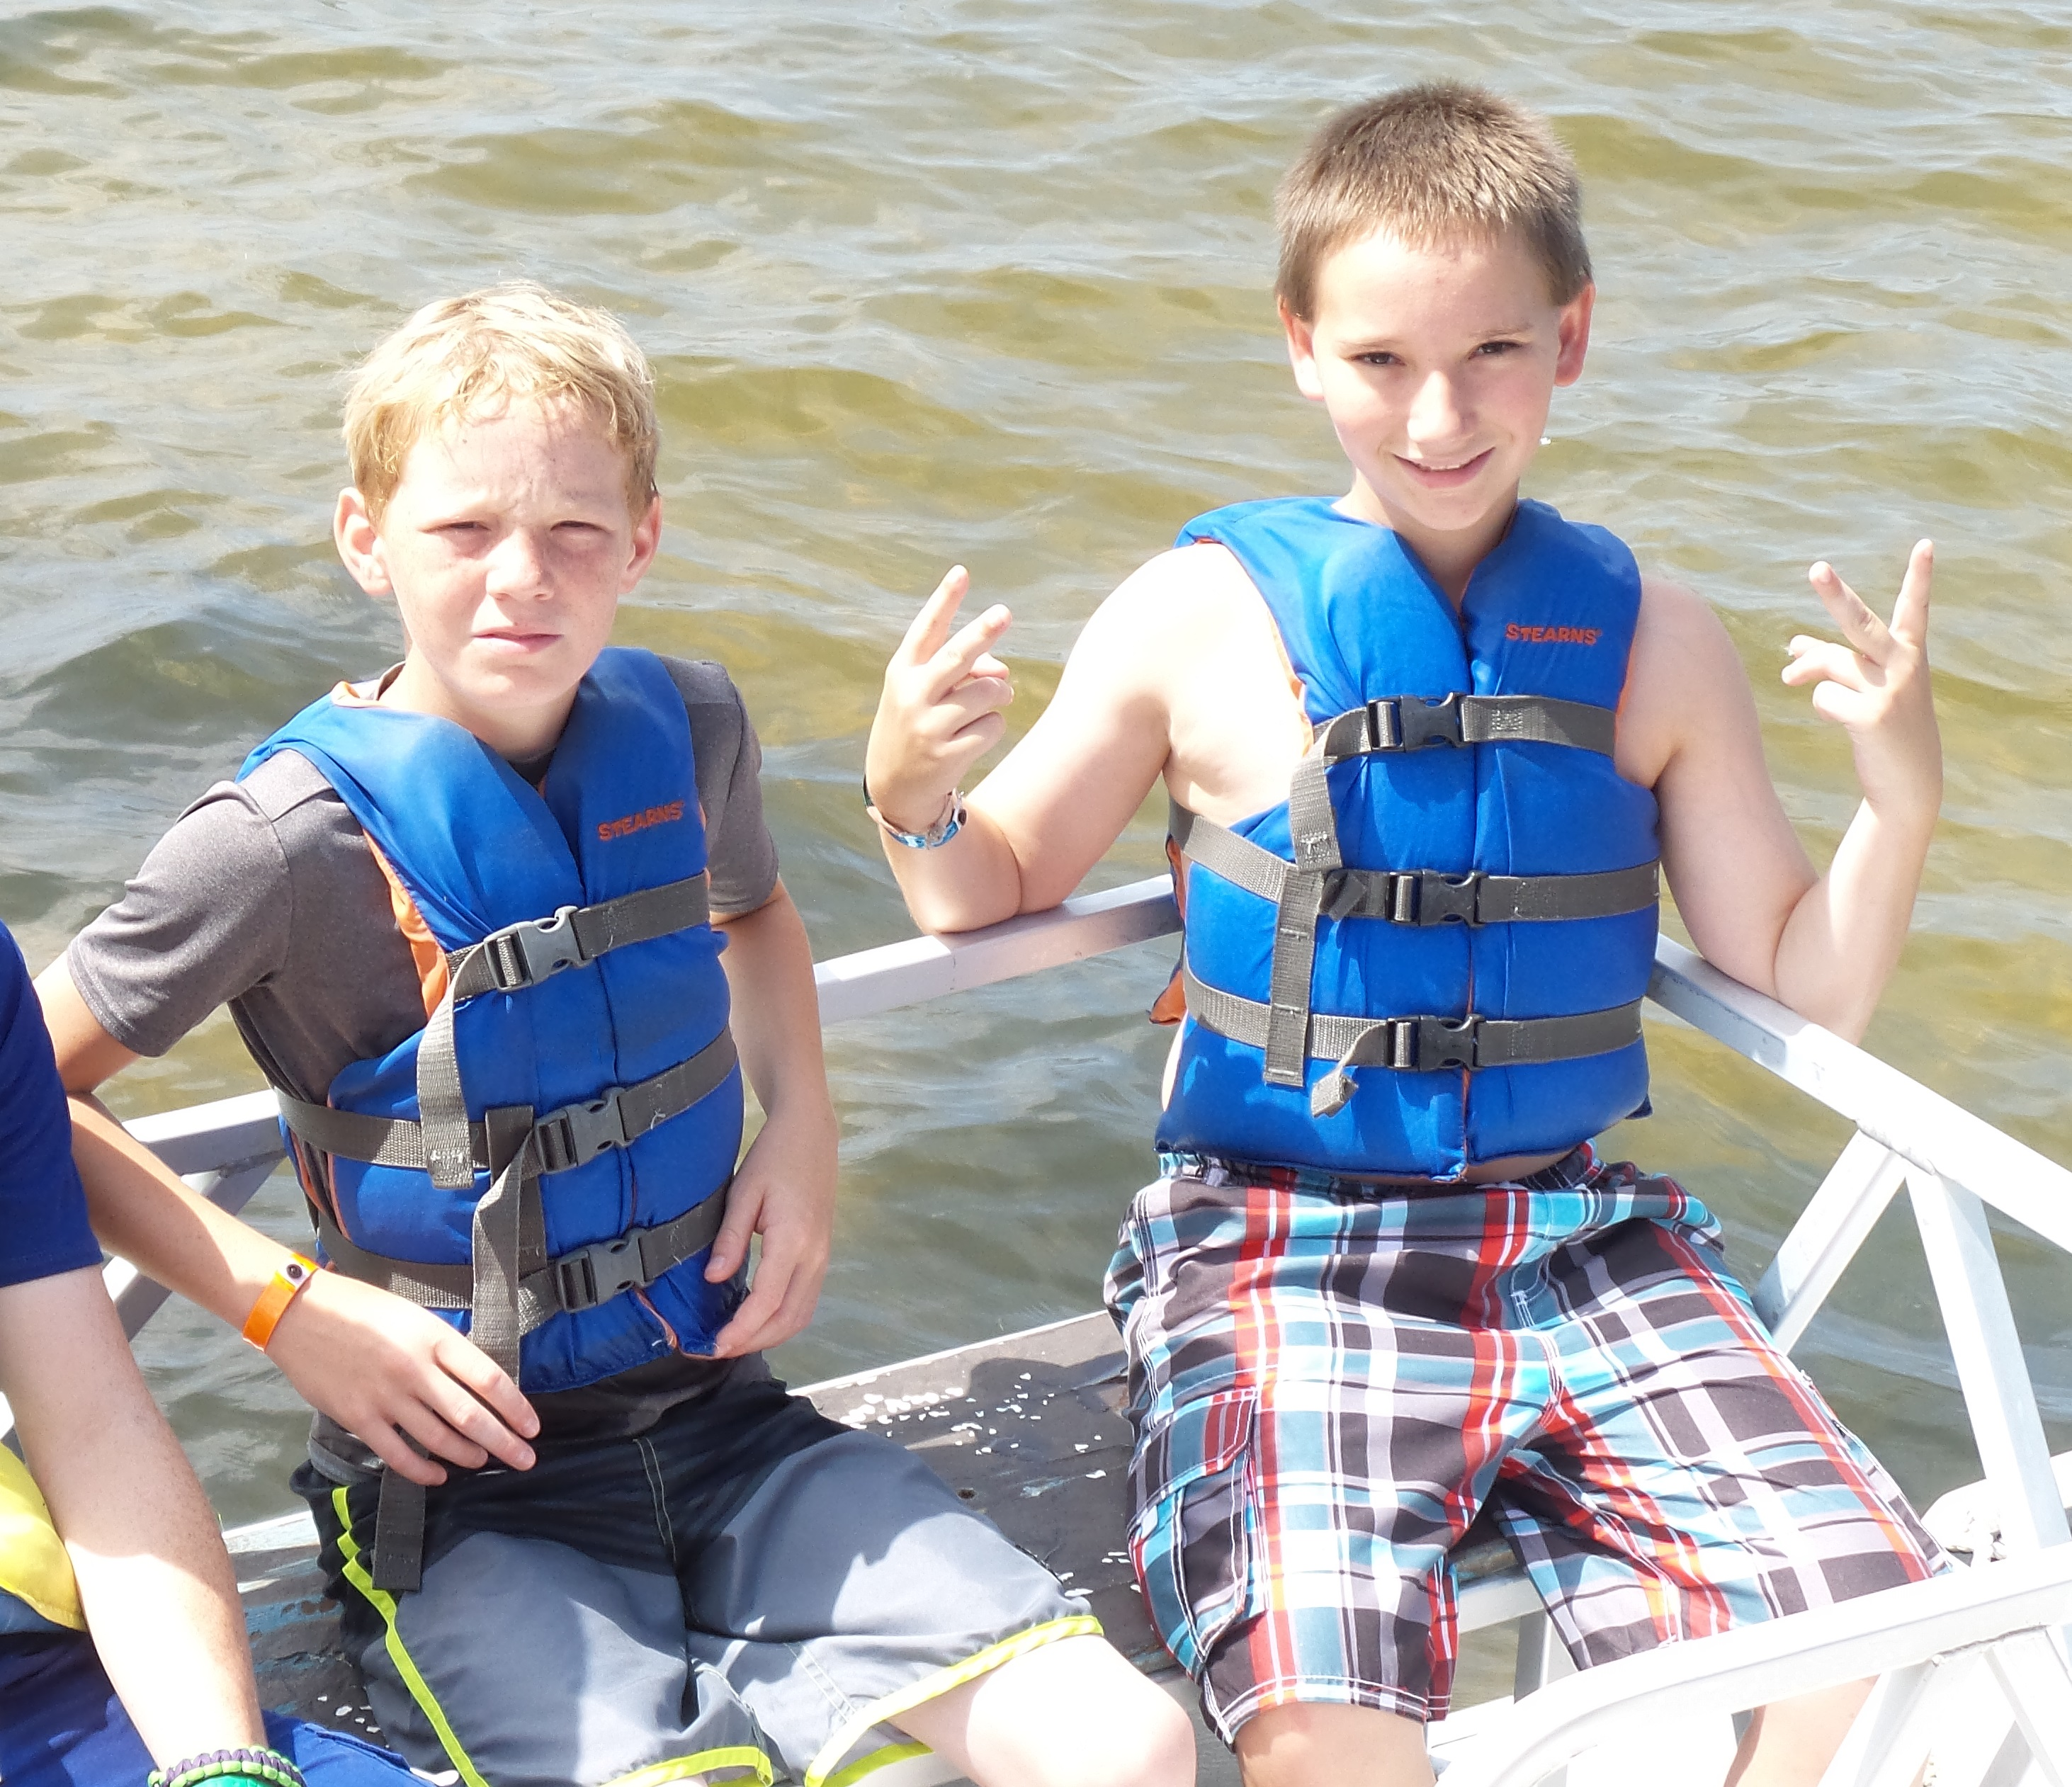 Ways to Water Safety | 4-H in the Panhandle